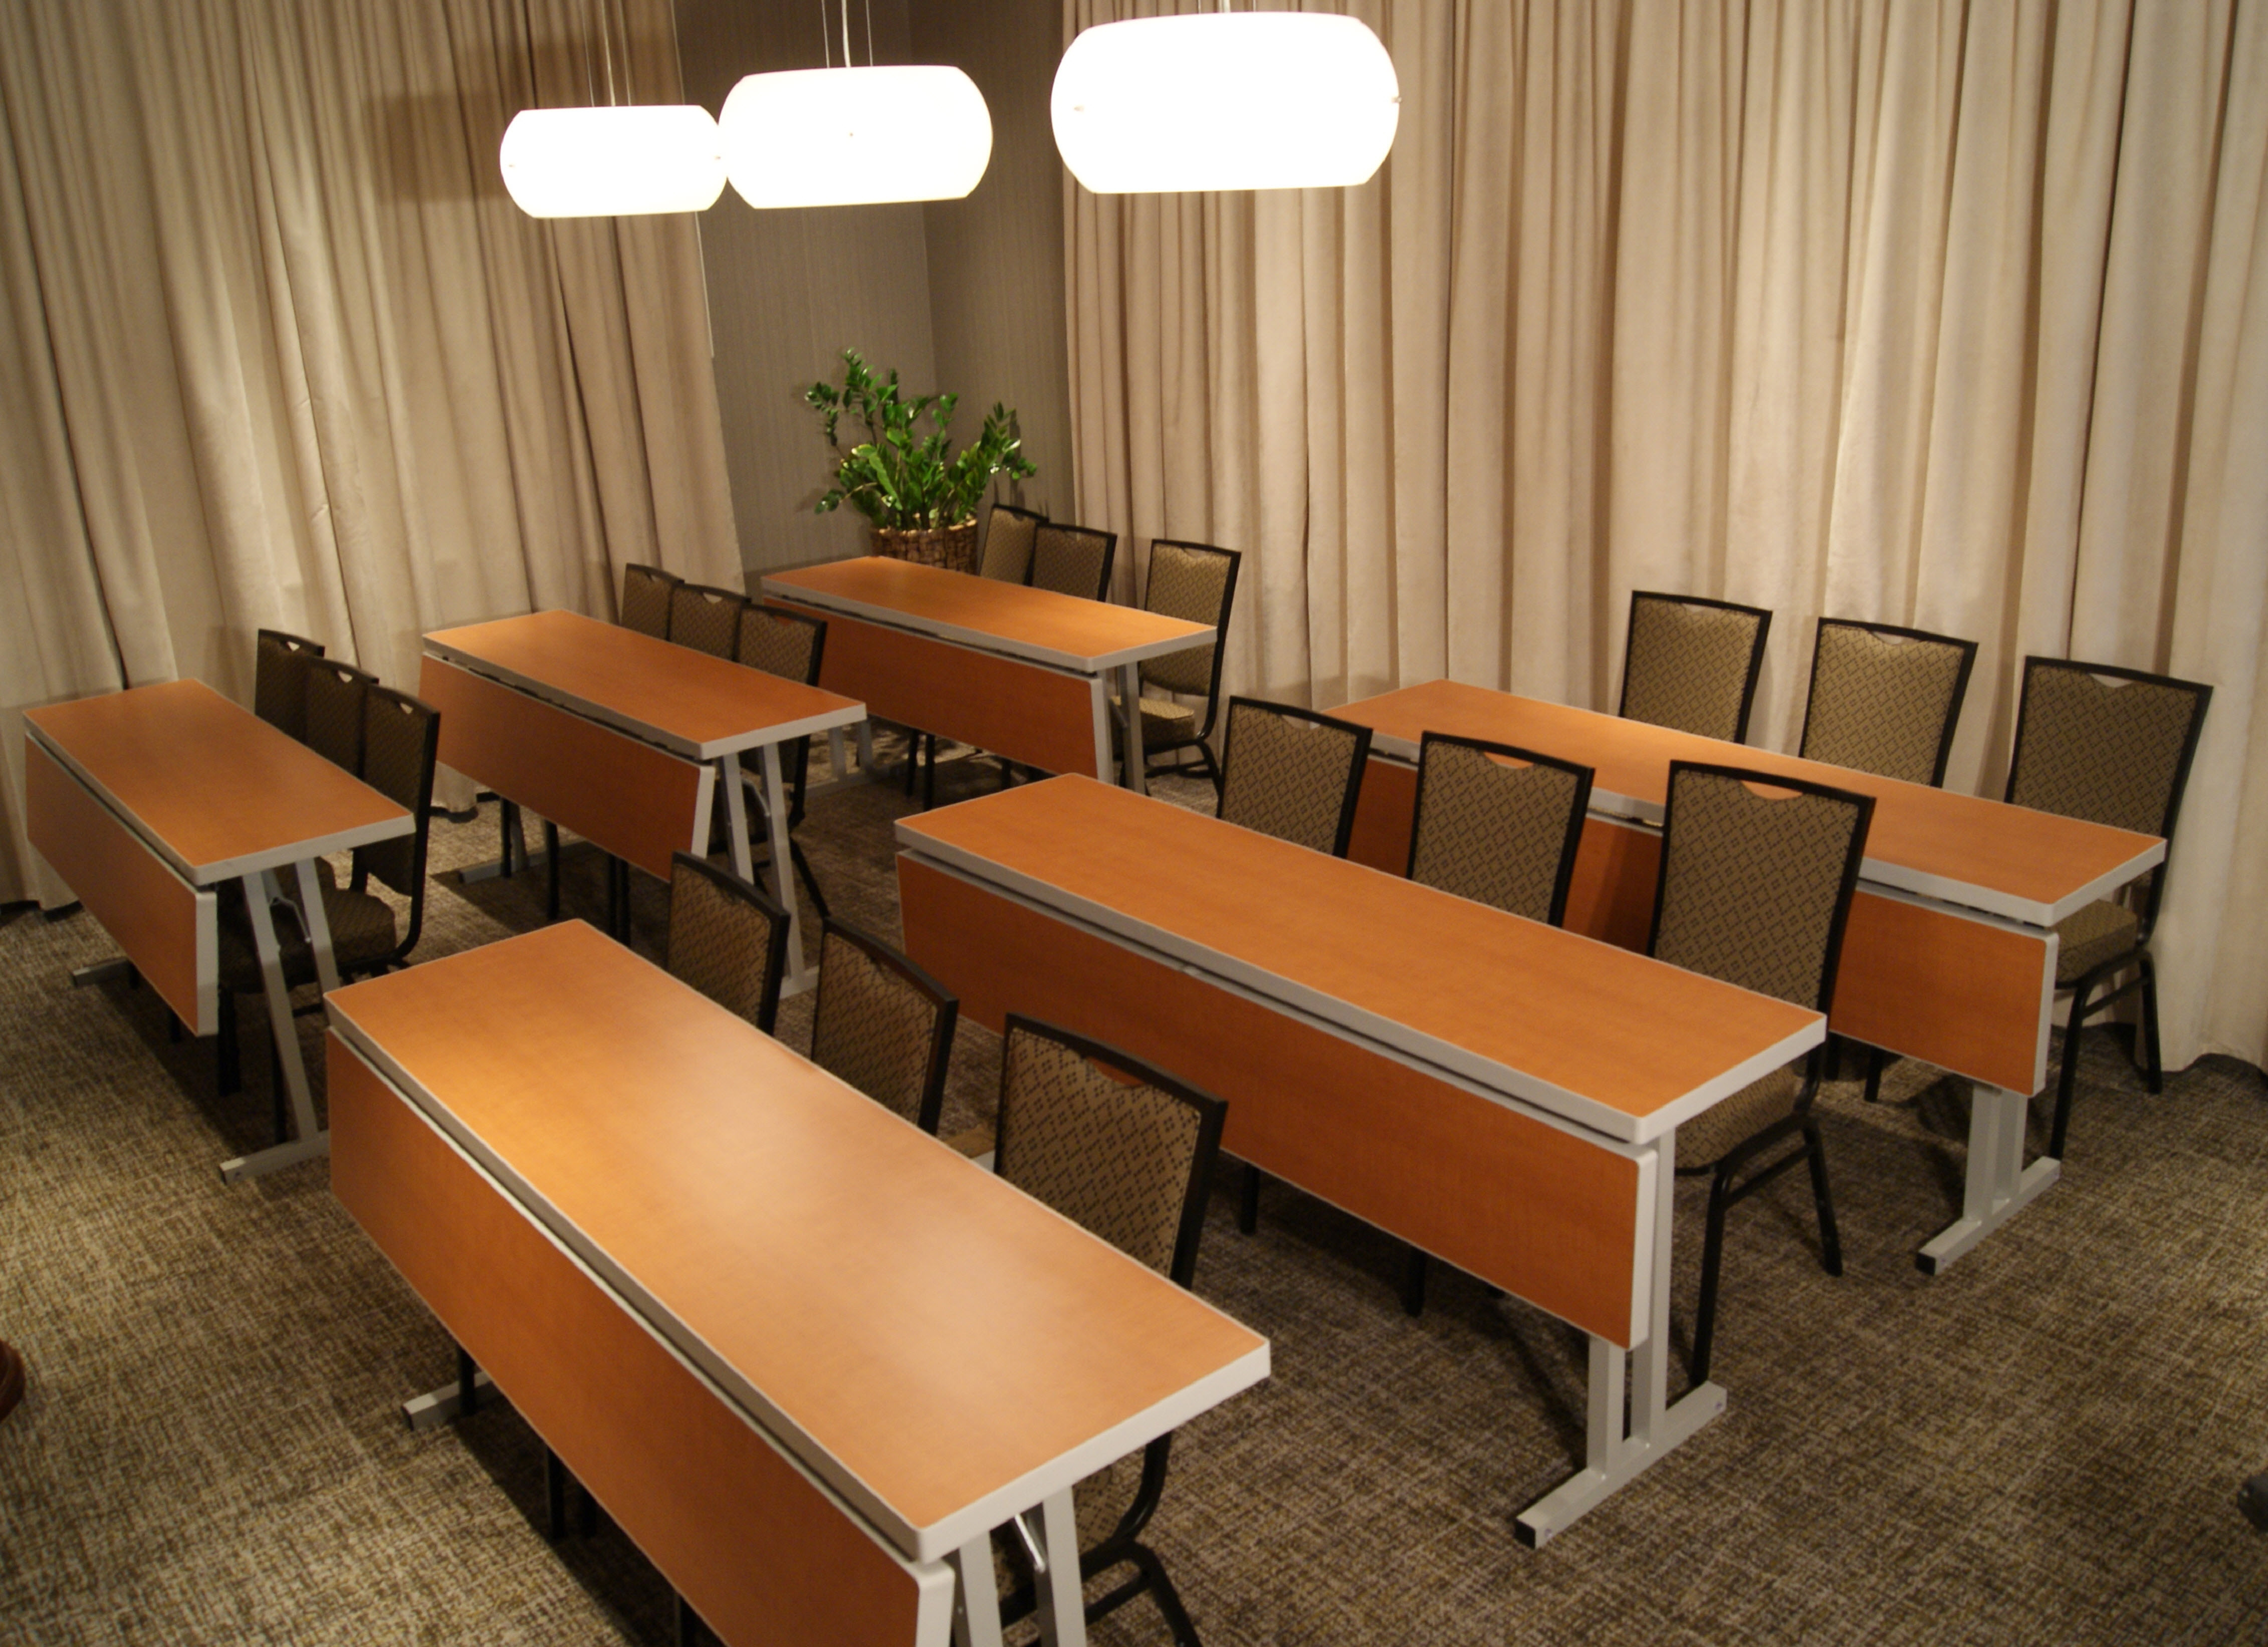 SpringHill Suites by Marriott Chicago Waukegan/Gurnee image 16